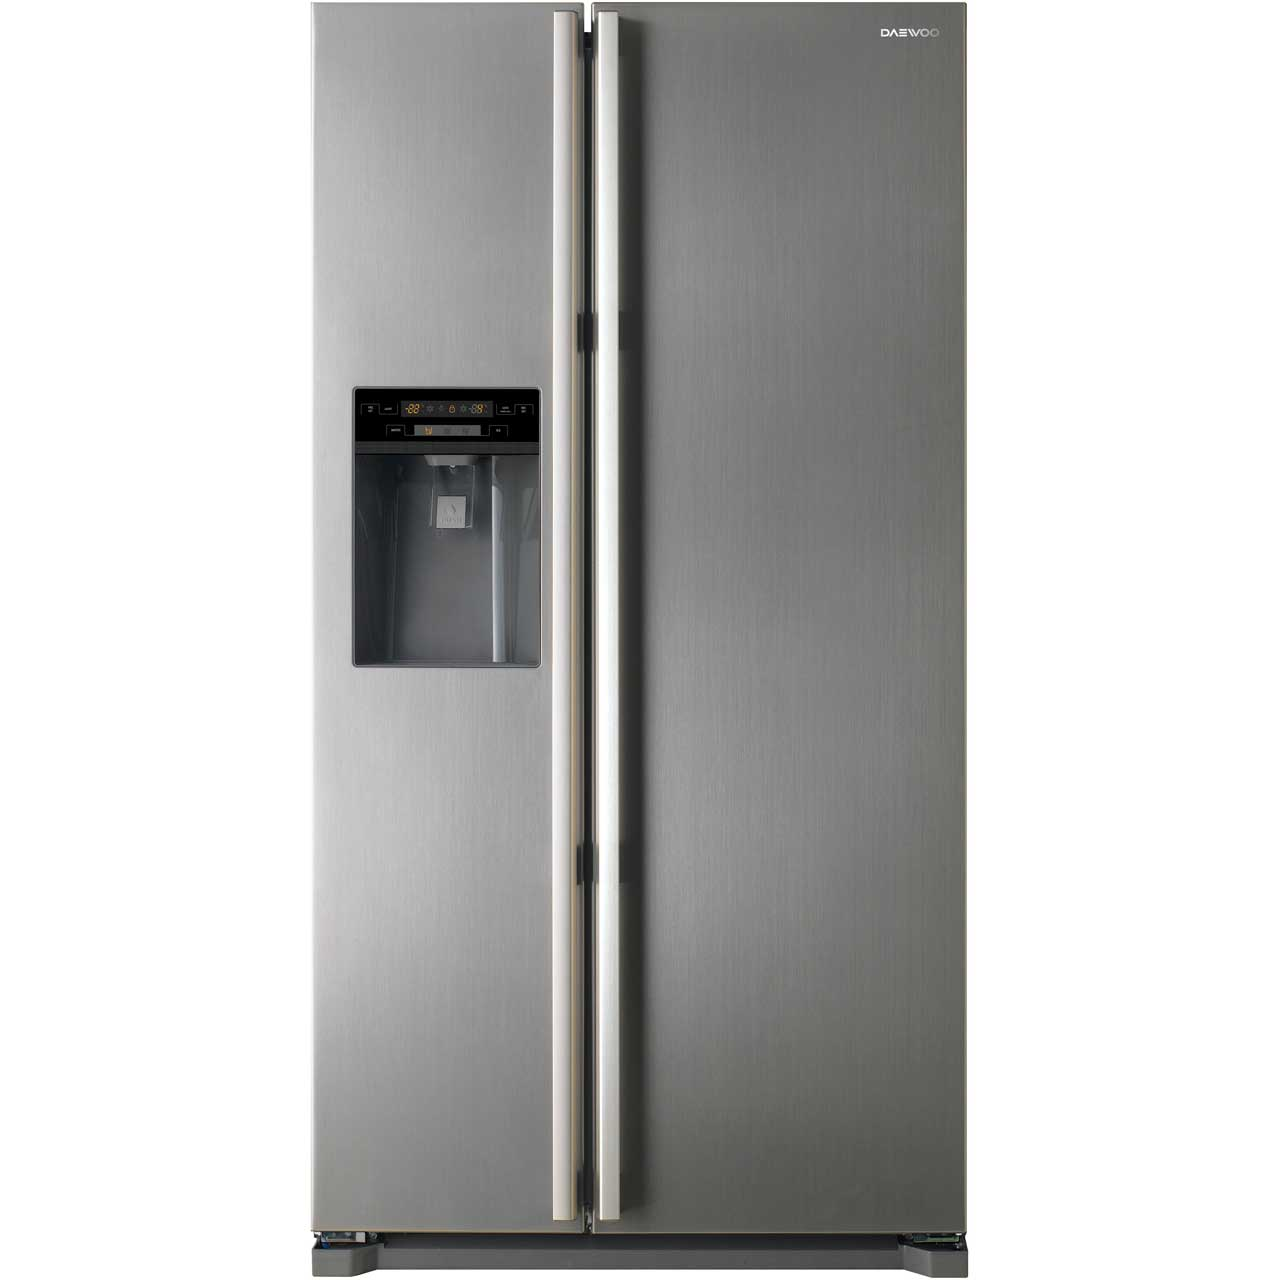 Daewoo FRAX22NP3S Free Standing American Fridge Freezer in Silver